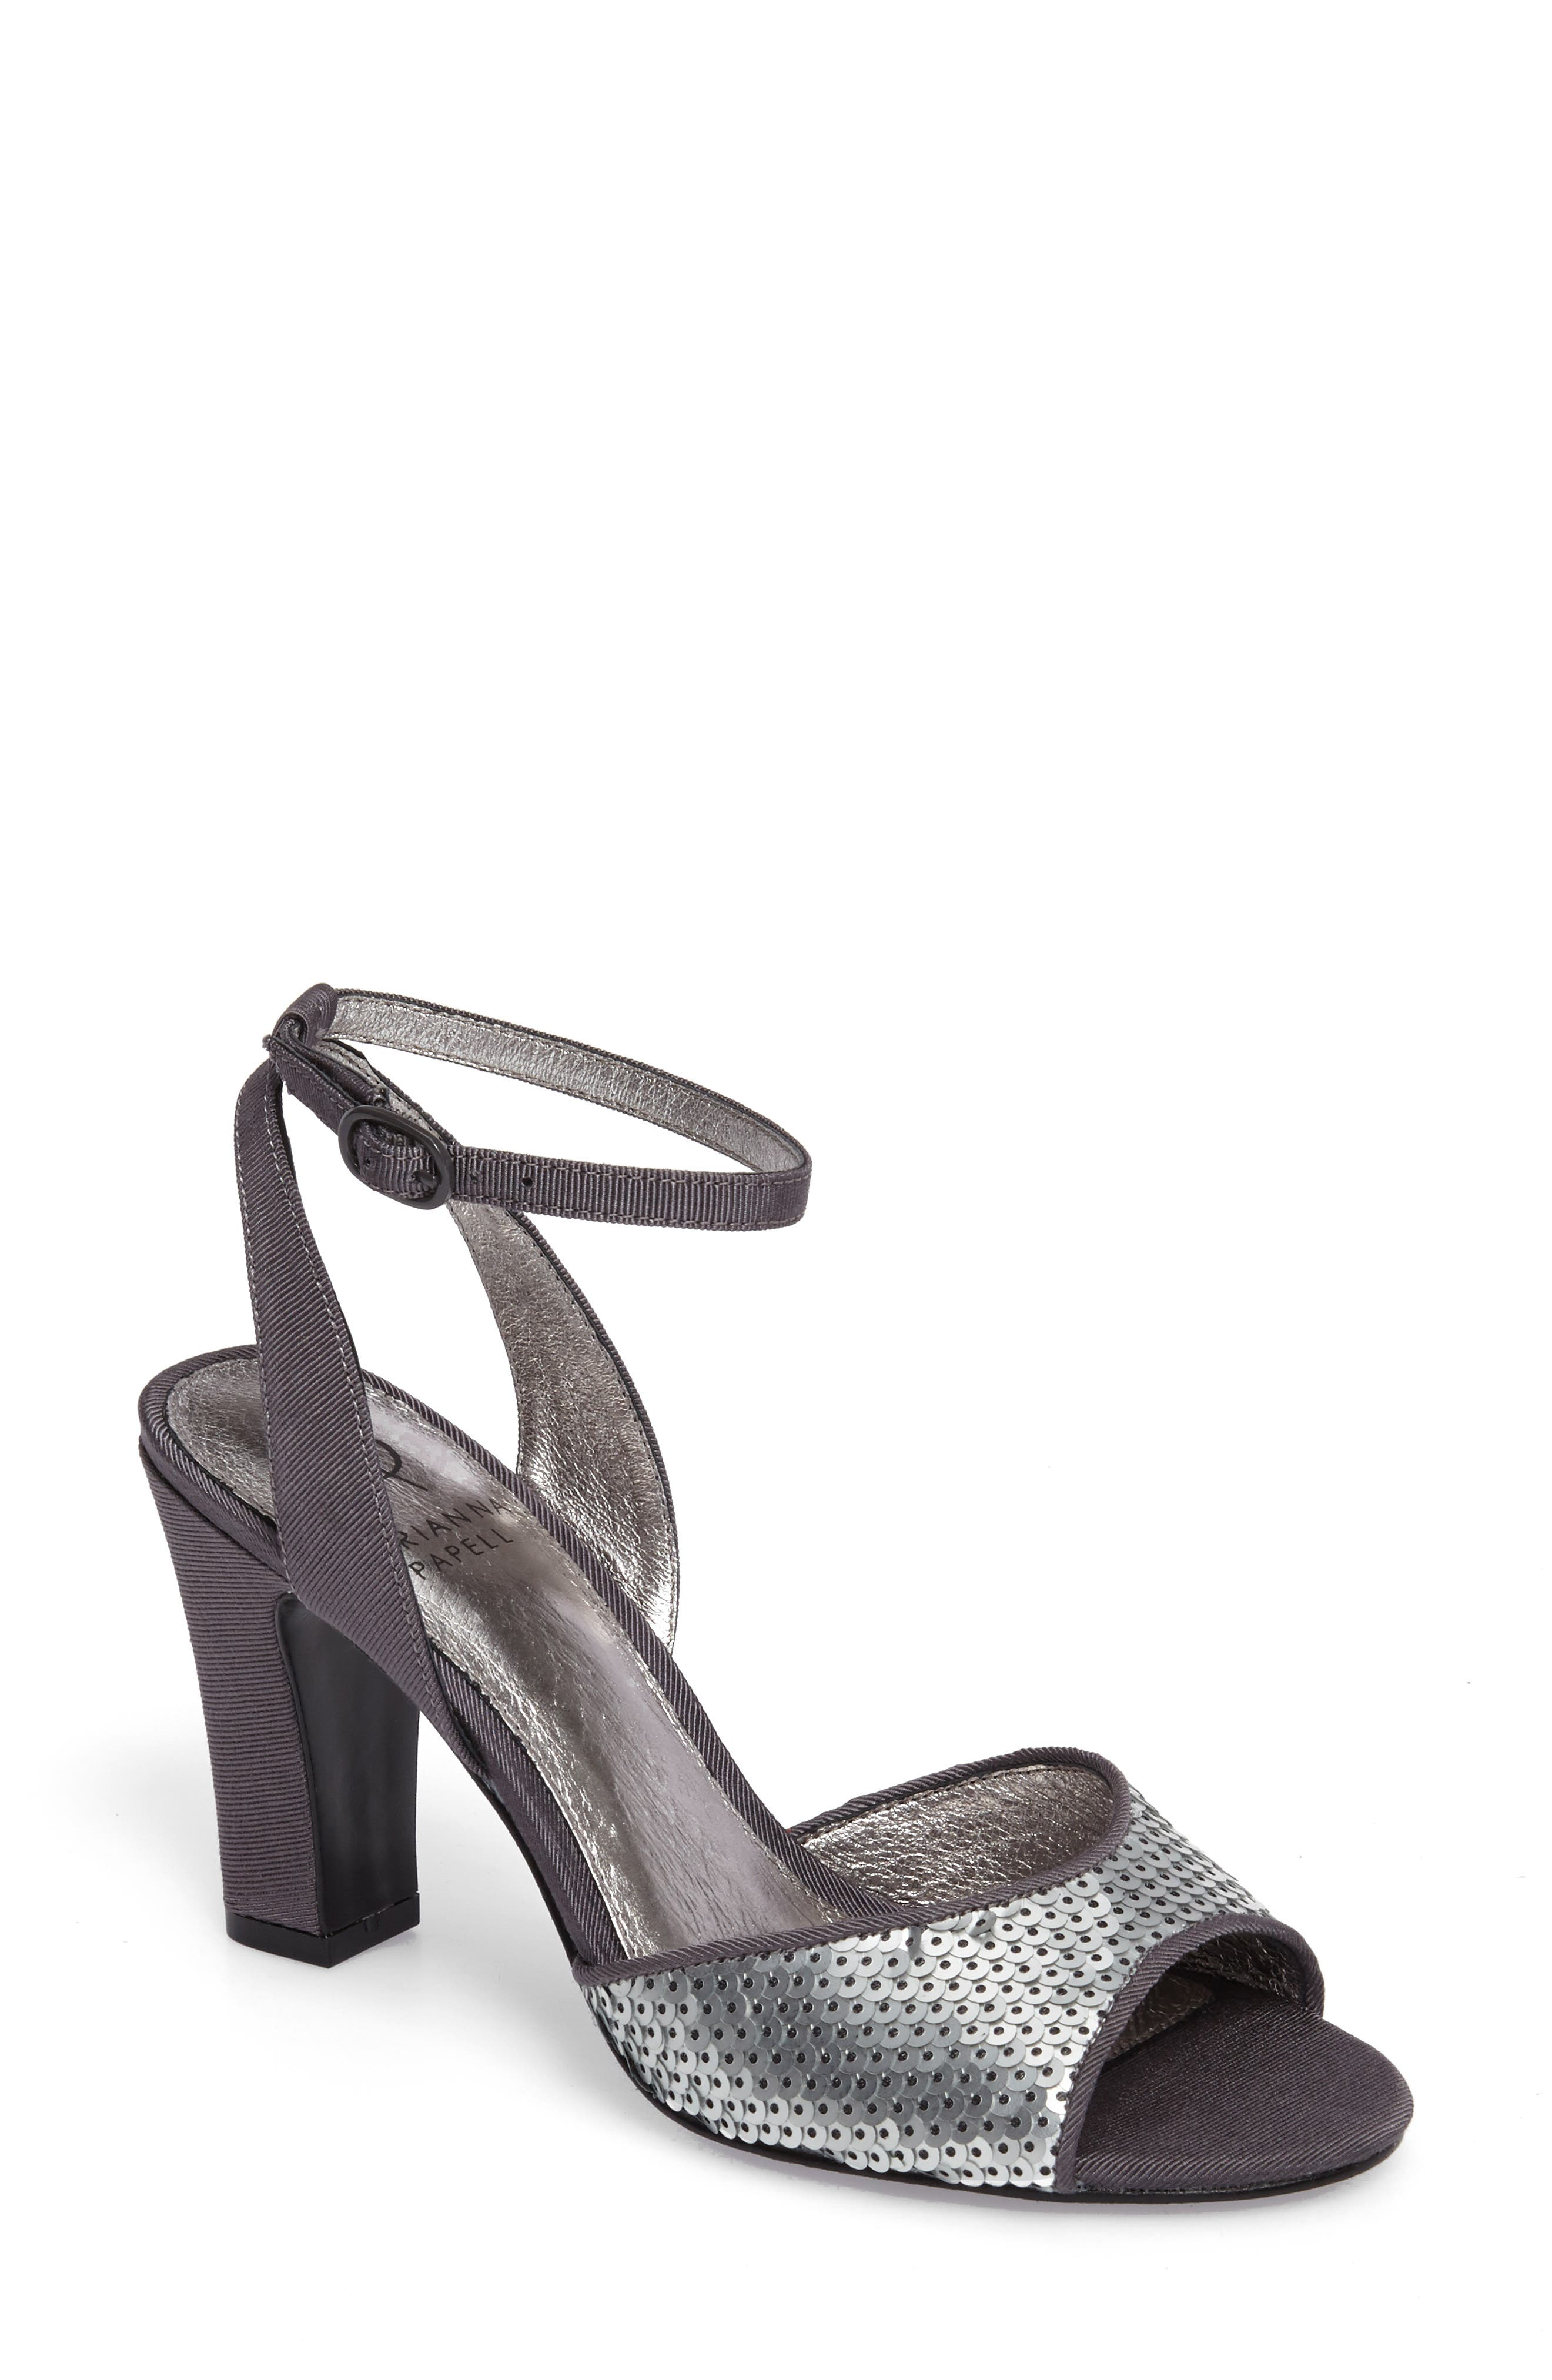 Main Image - Adrianna Papell Astrid Ankle Strap Sandal (Women)